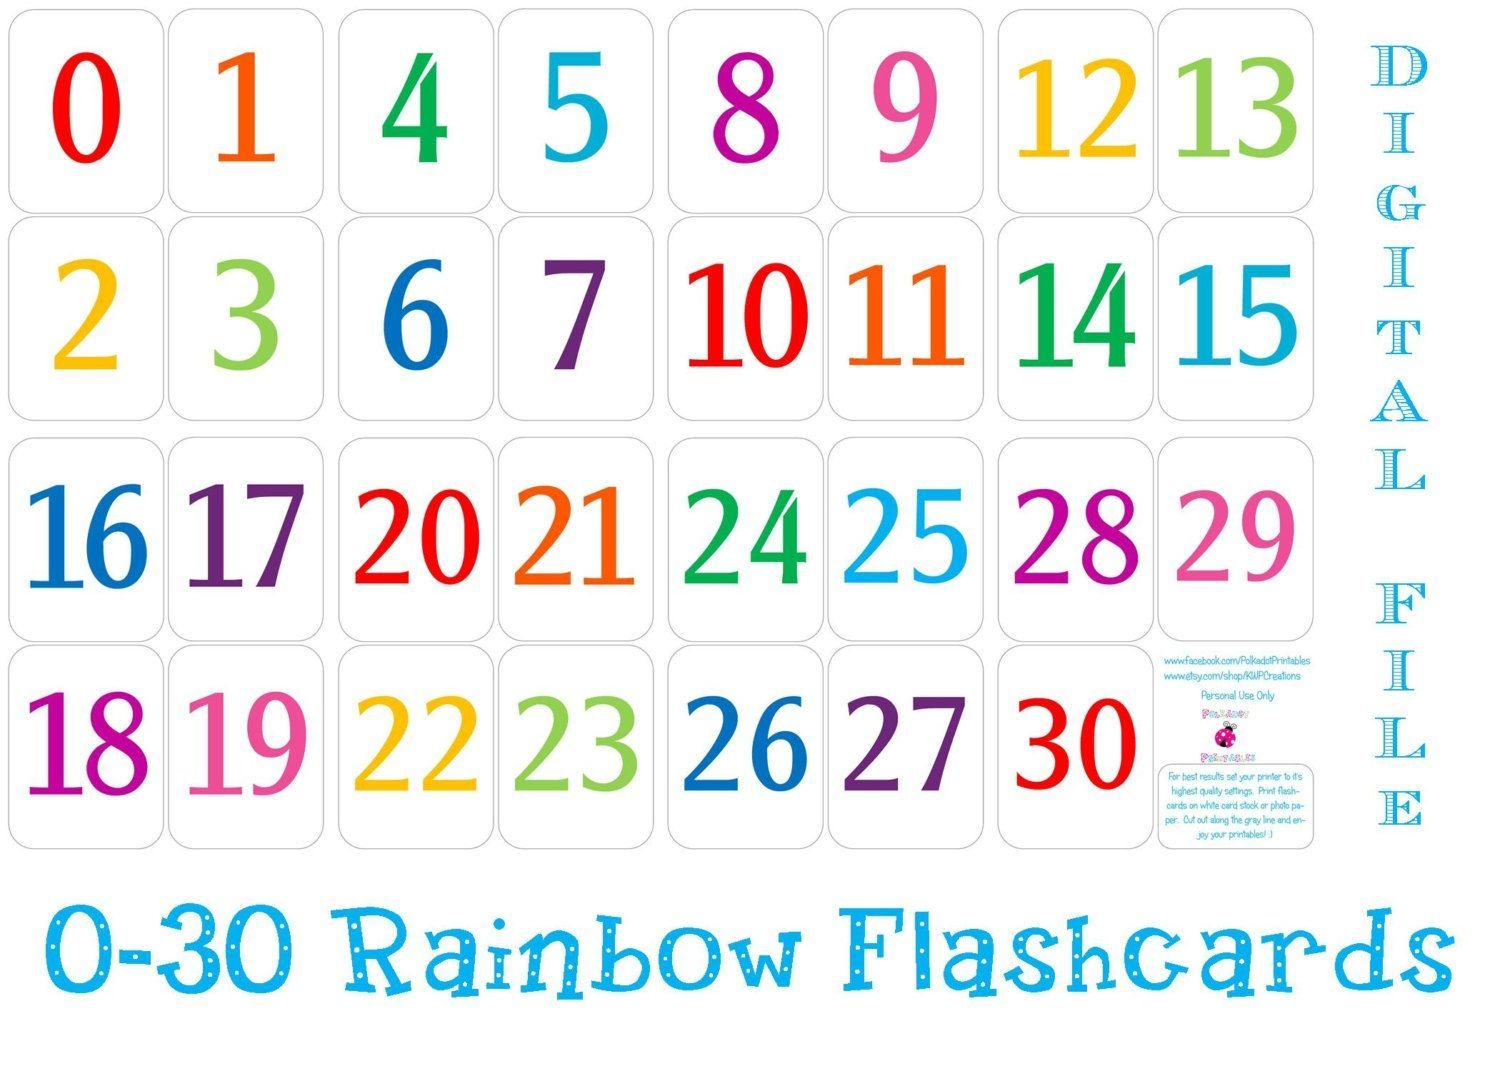 Printable Number Cards 1 30 (With Images) | Printable